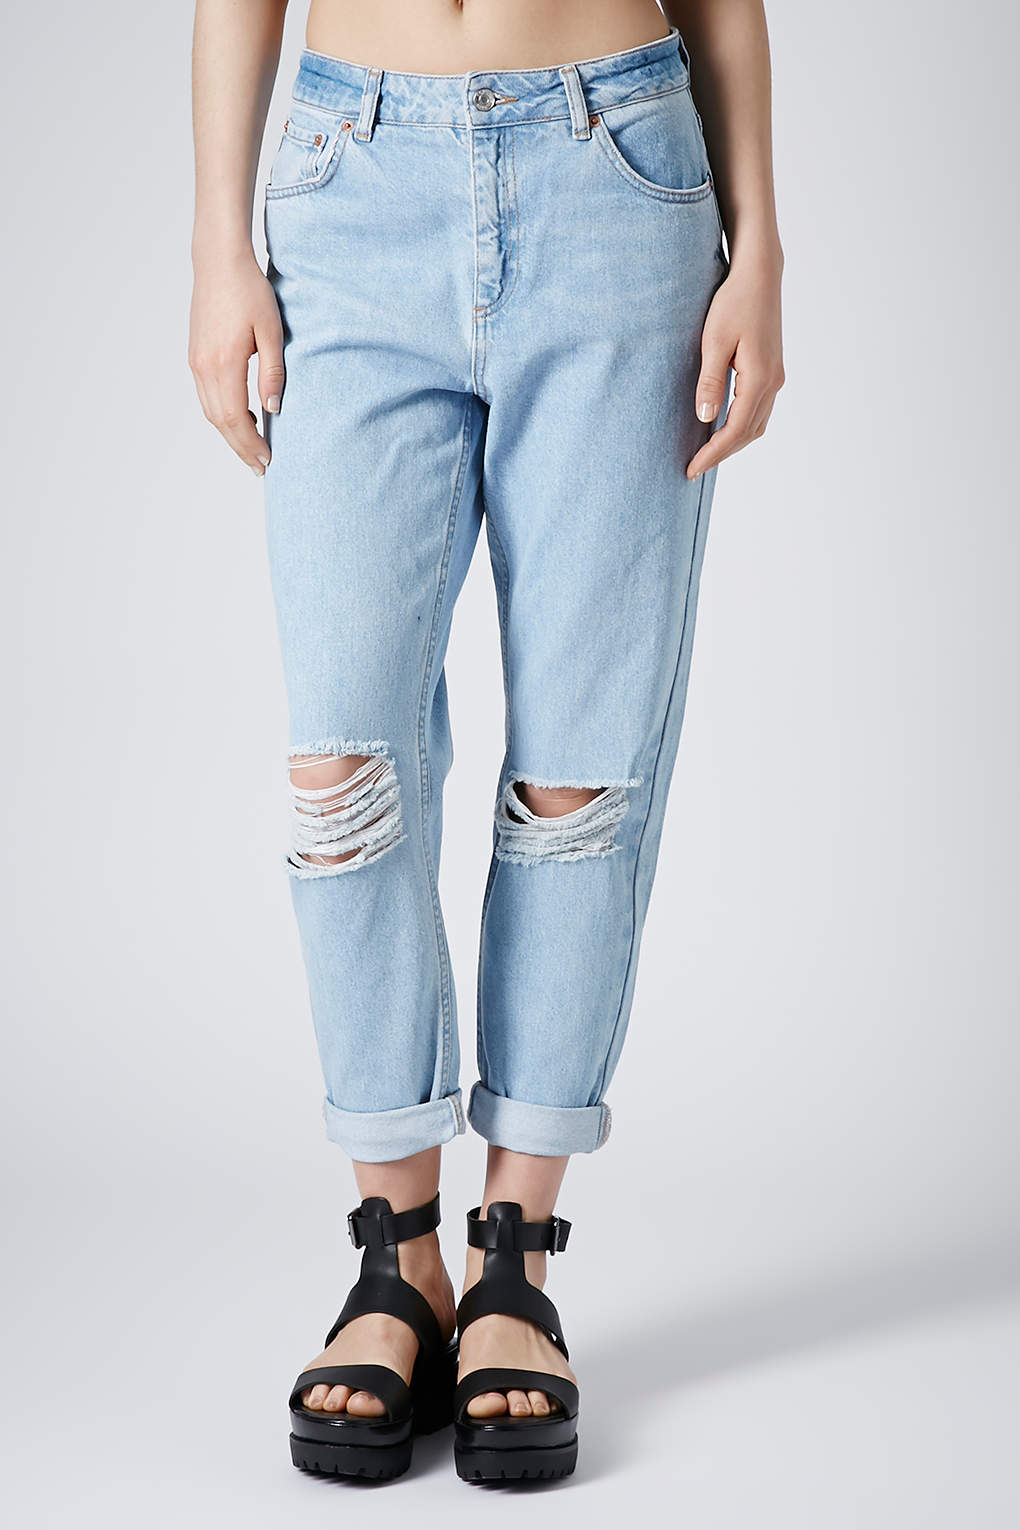 ff0533ac2d5 MOTO Ripped Blue Wash Mom Jeans - Topshop